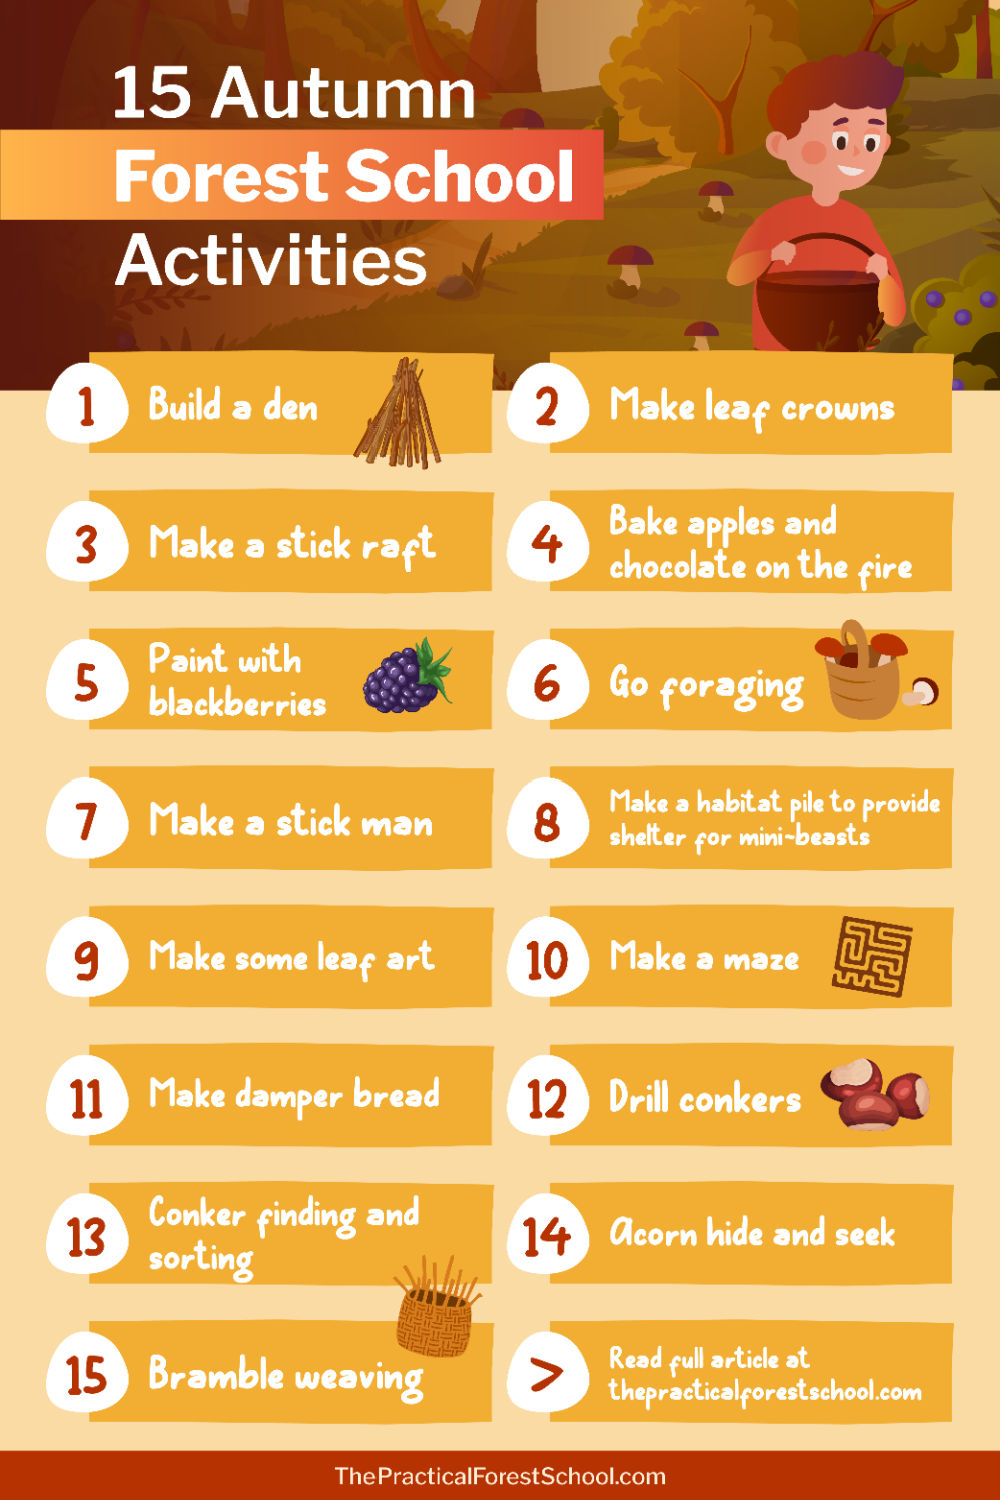 List of activities for forest school in autumn